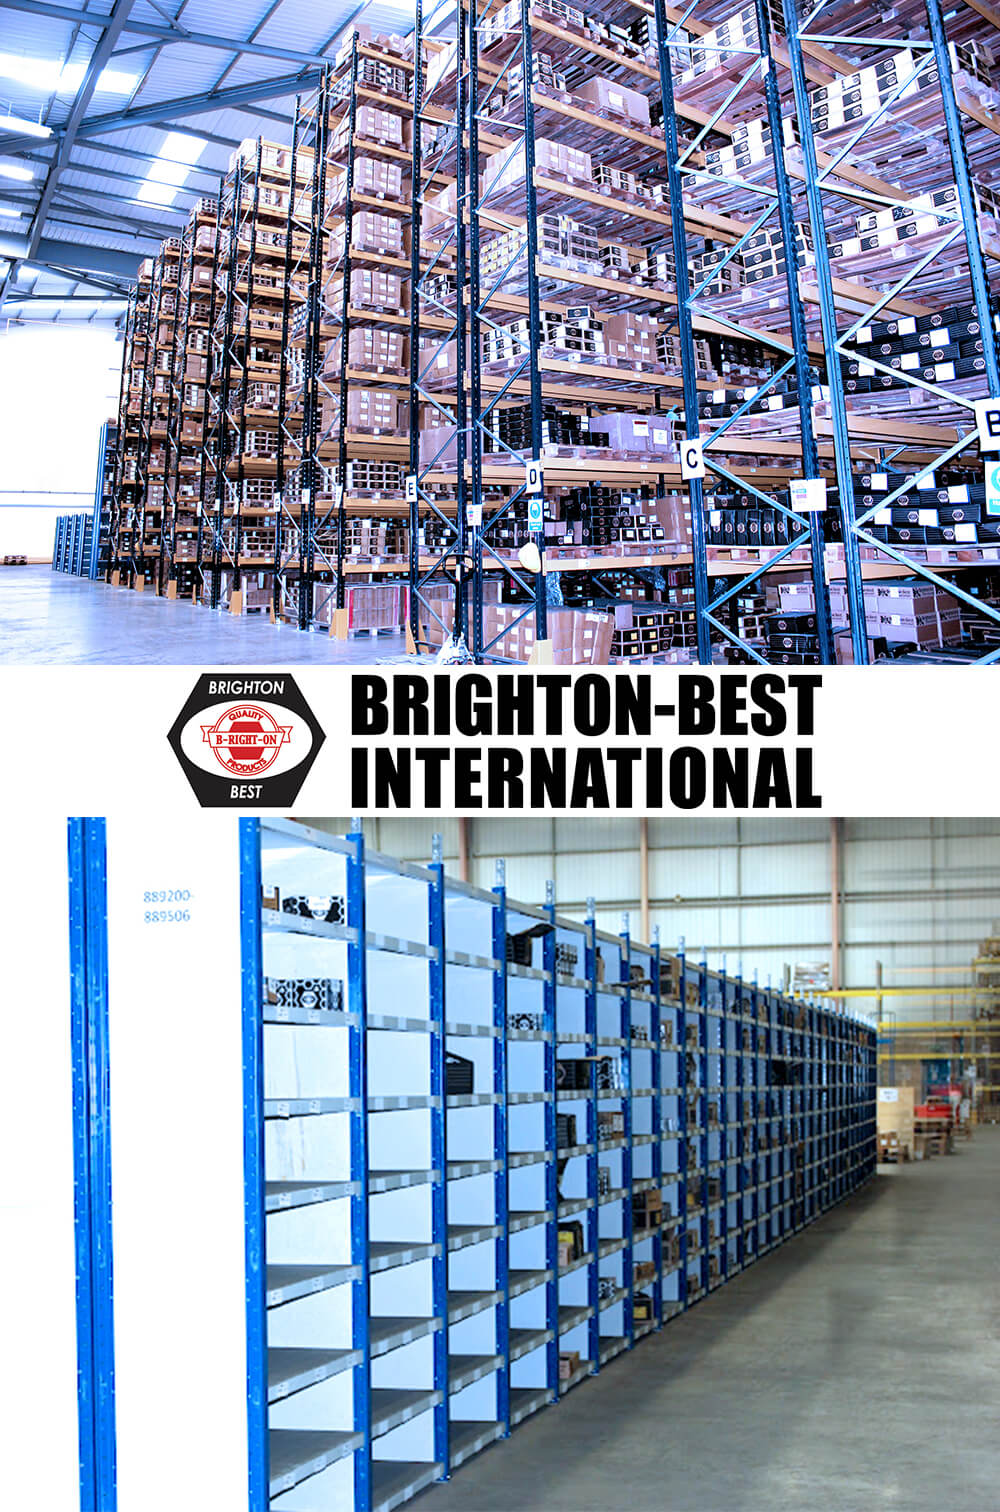 Warehouse Pallet Racking & Shelving for Brighton Best